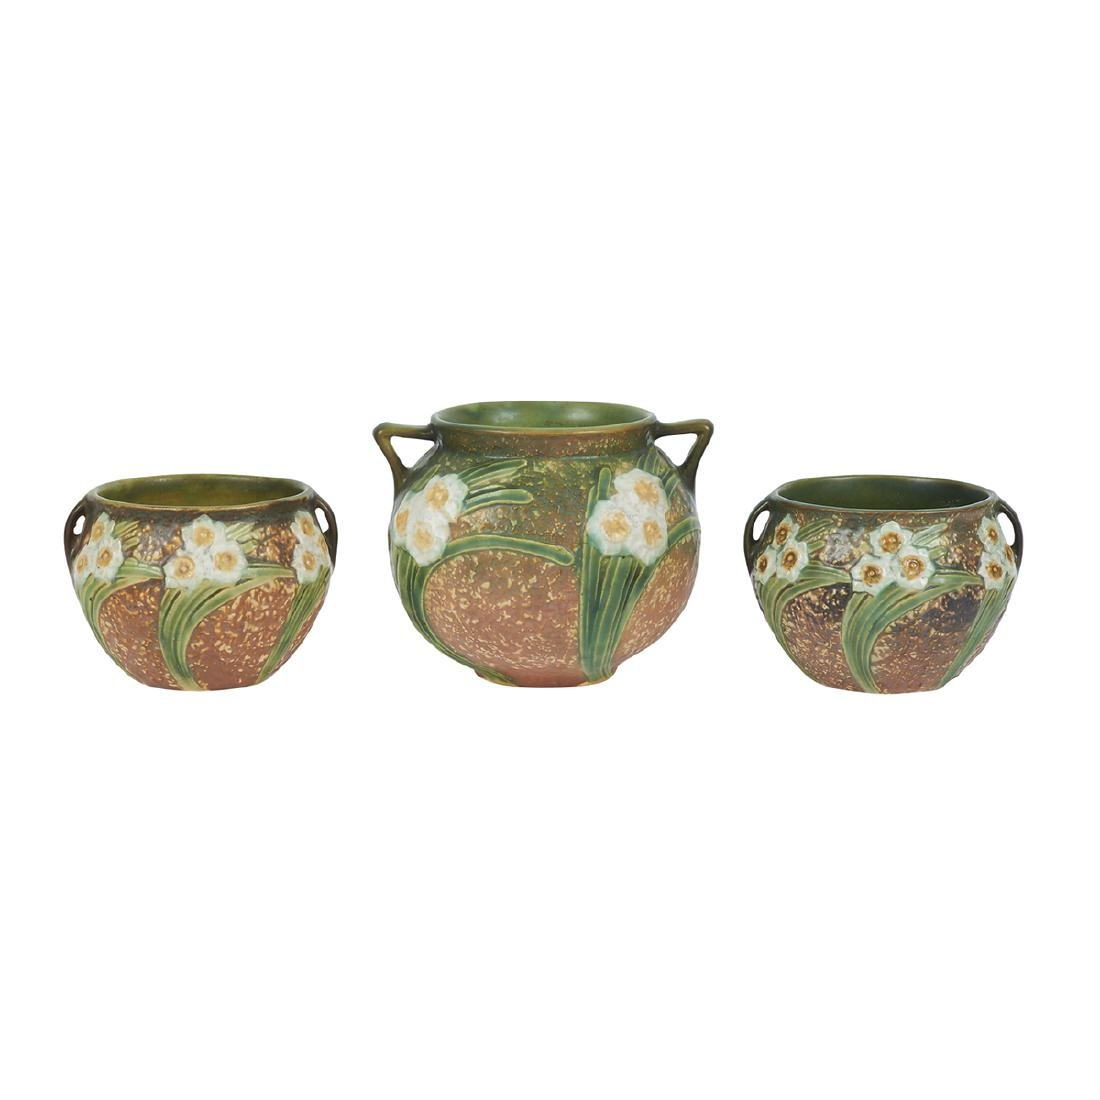 Roseville Pottery Co. Jonquil planters, three